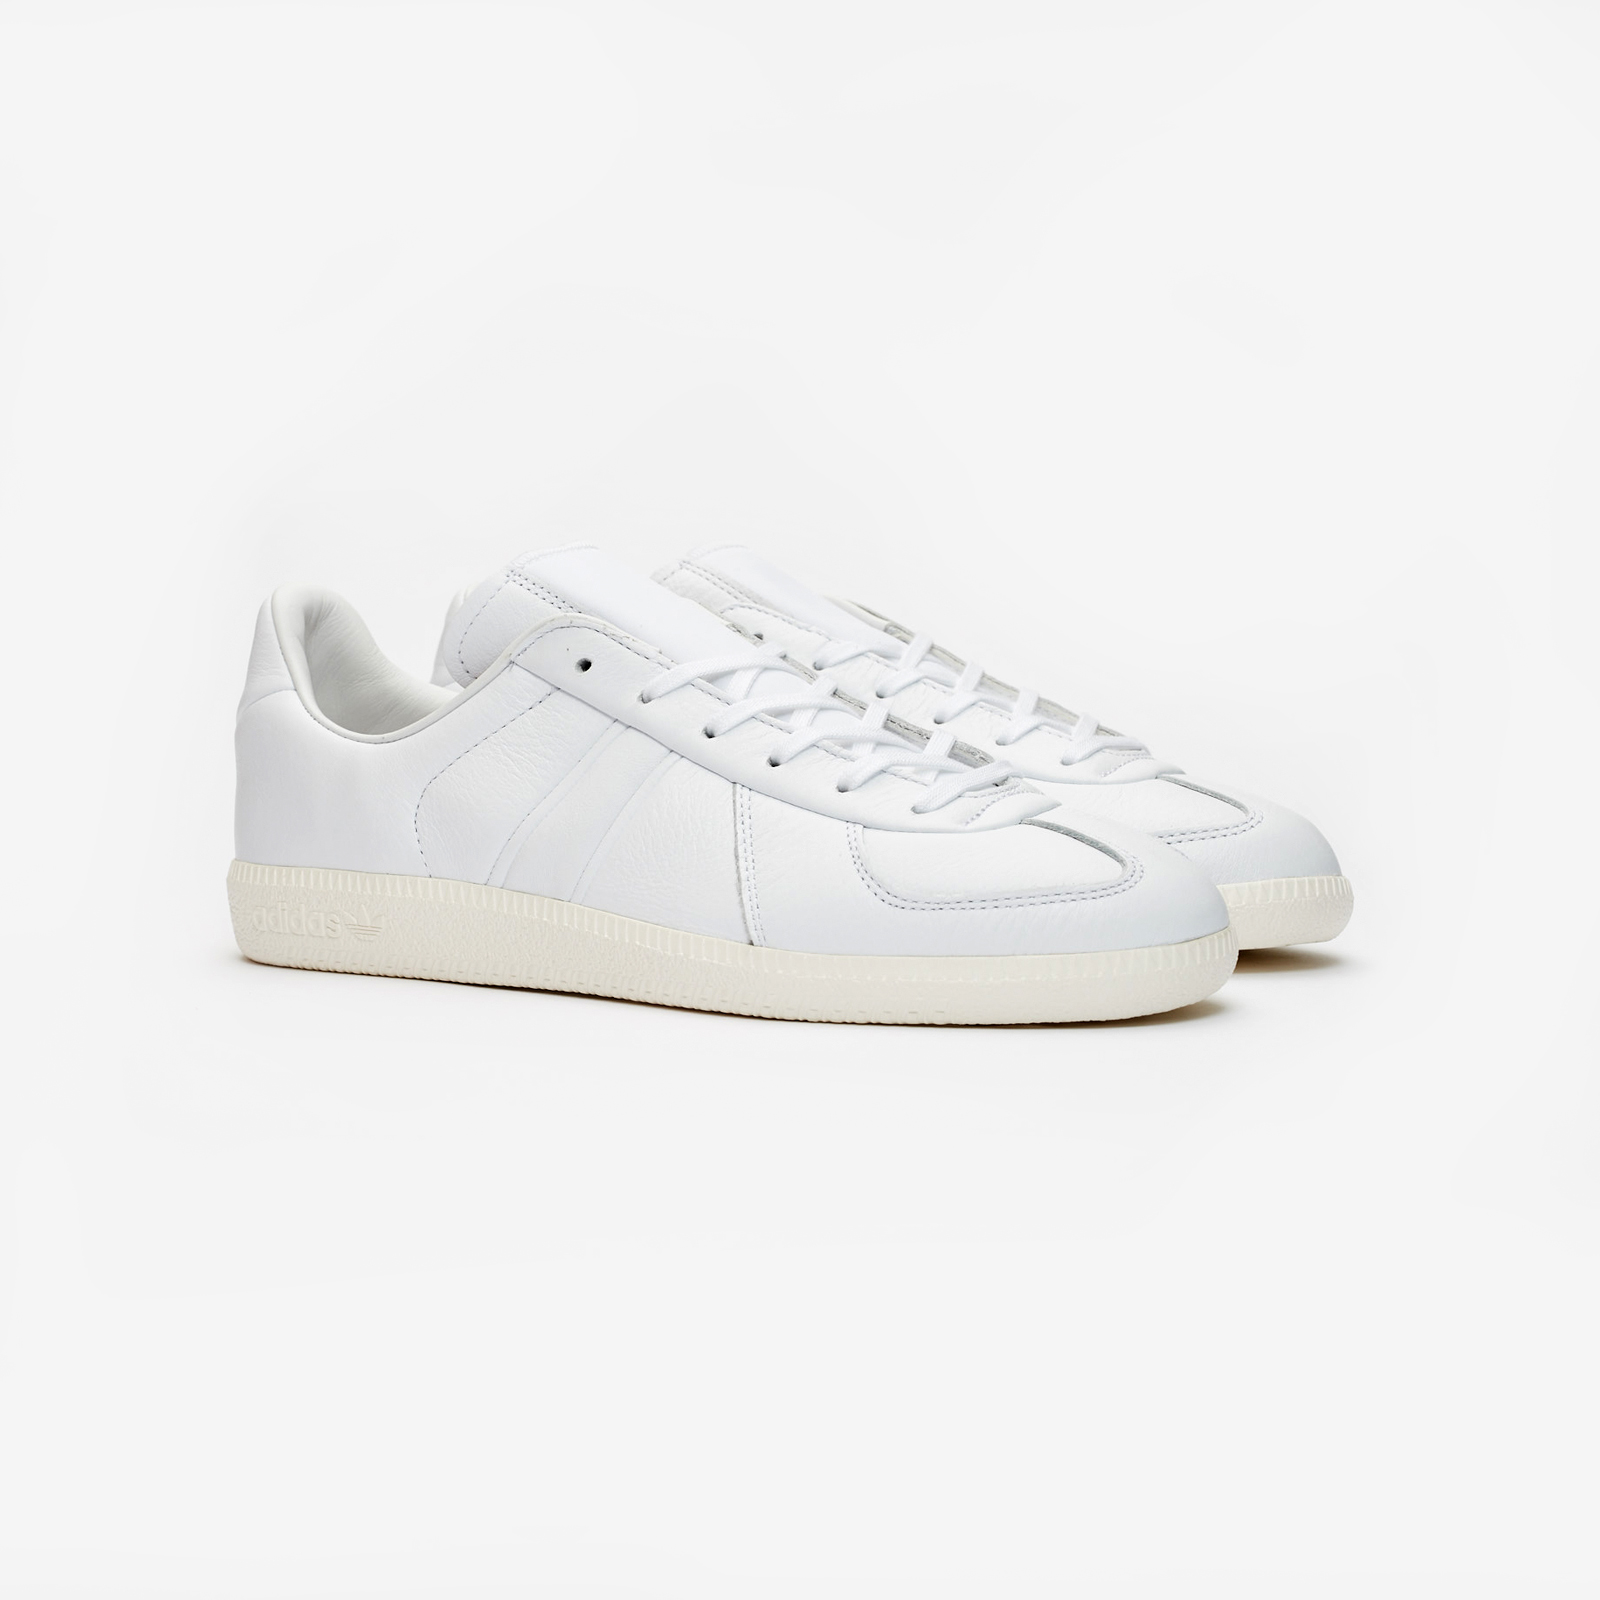 adidas BW Army x Oyster Bc0545 Sneakersnstuff | sneakers